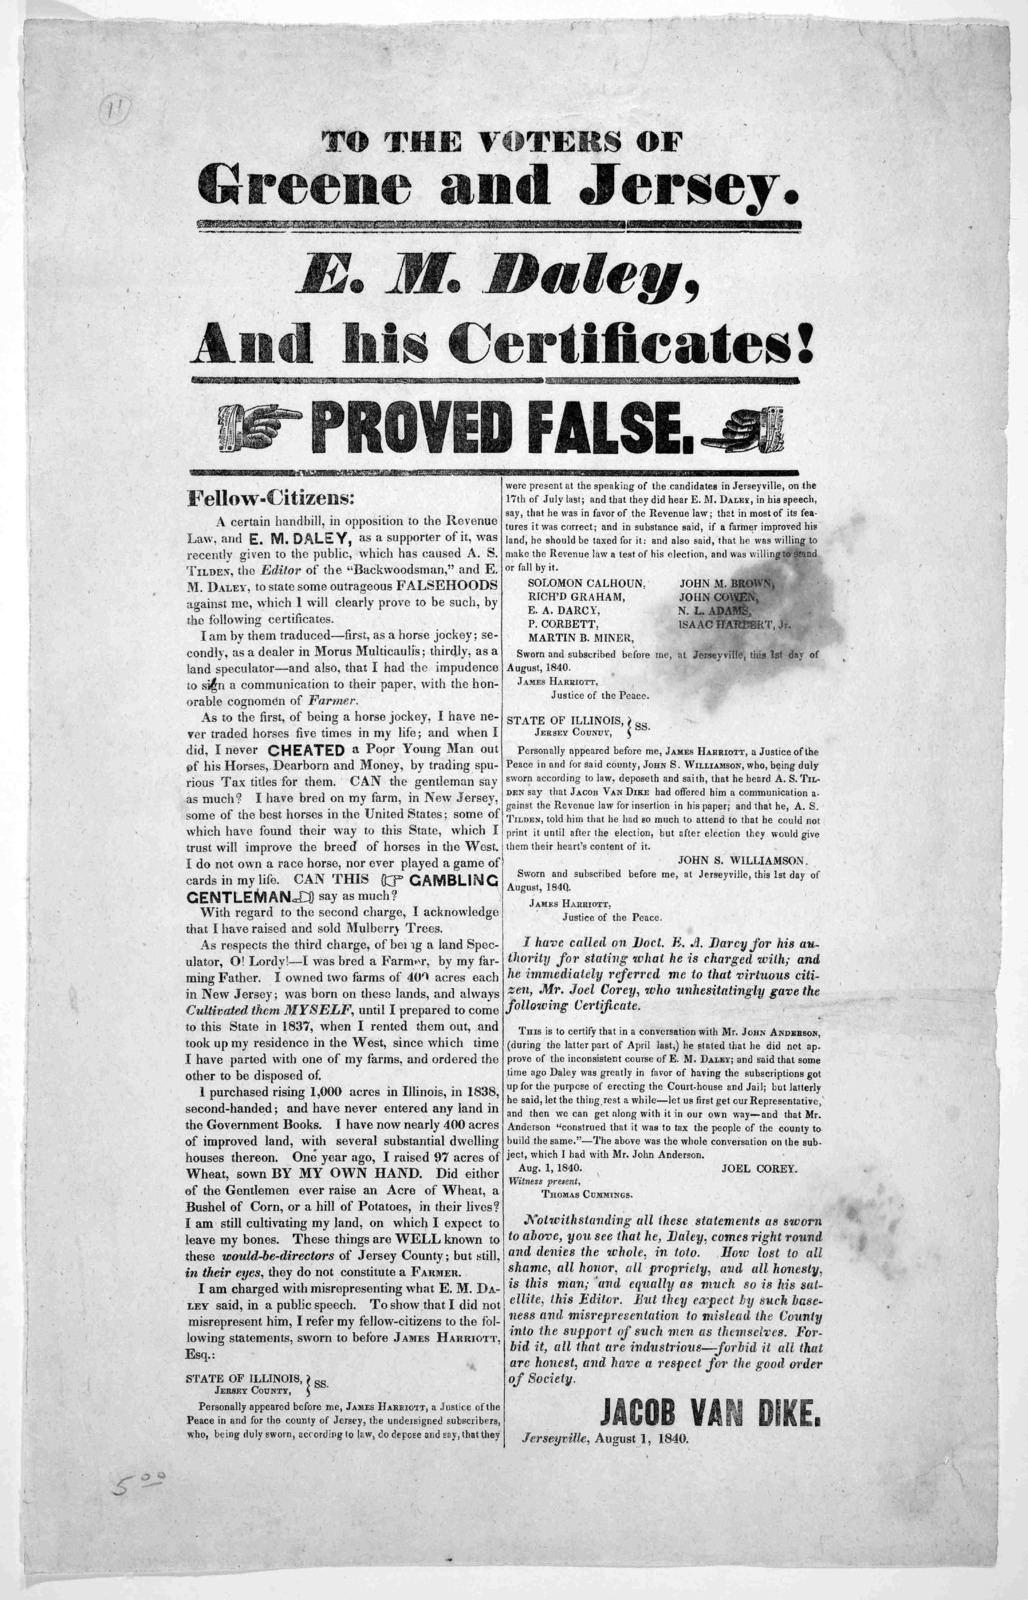 To the voters of Greene and Jersey. E. M. Daley and his certificates! proved false. Fellow citizens ... Jacob Van Dike. Jerseyville, August 1, 1840.